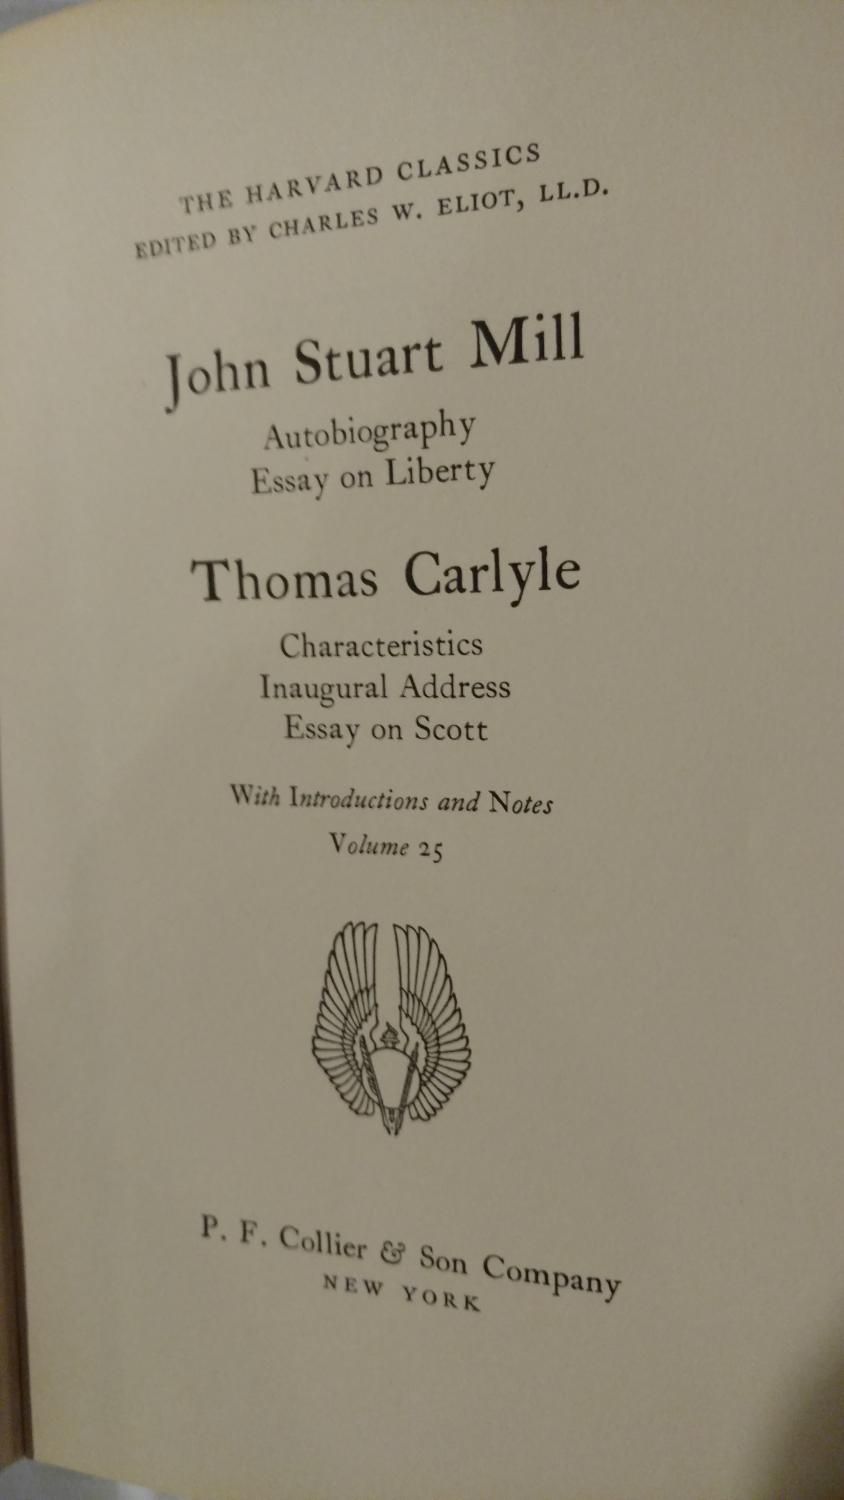 essay about liberty one generation away file statue of liberty  john stuart mill autobiography essay liberty thomas carlyle john stuart mill autobiography essay liberty thomas carlyle